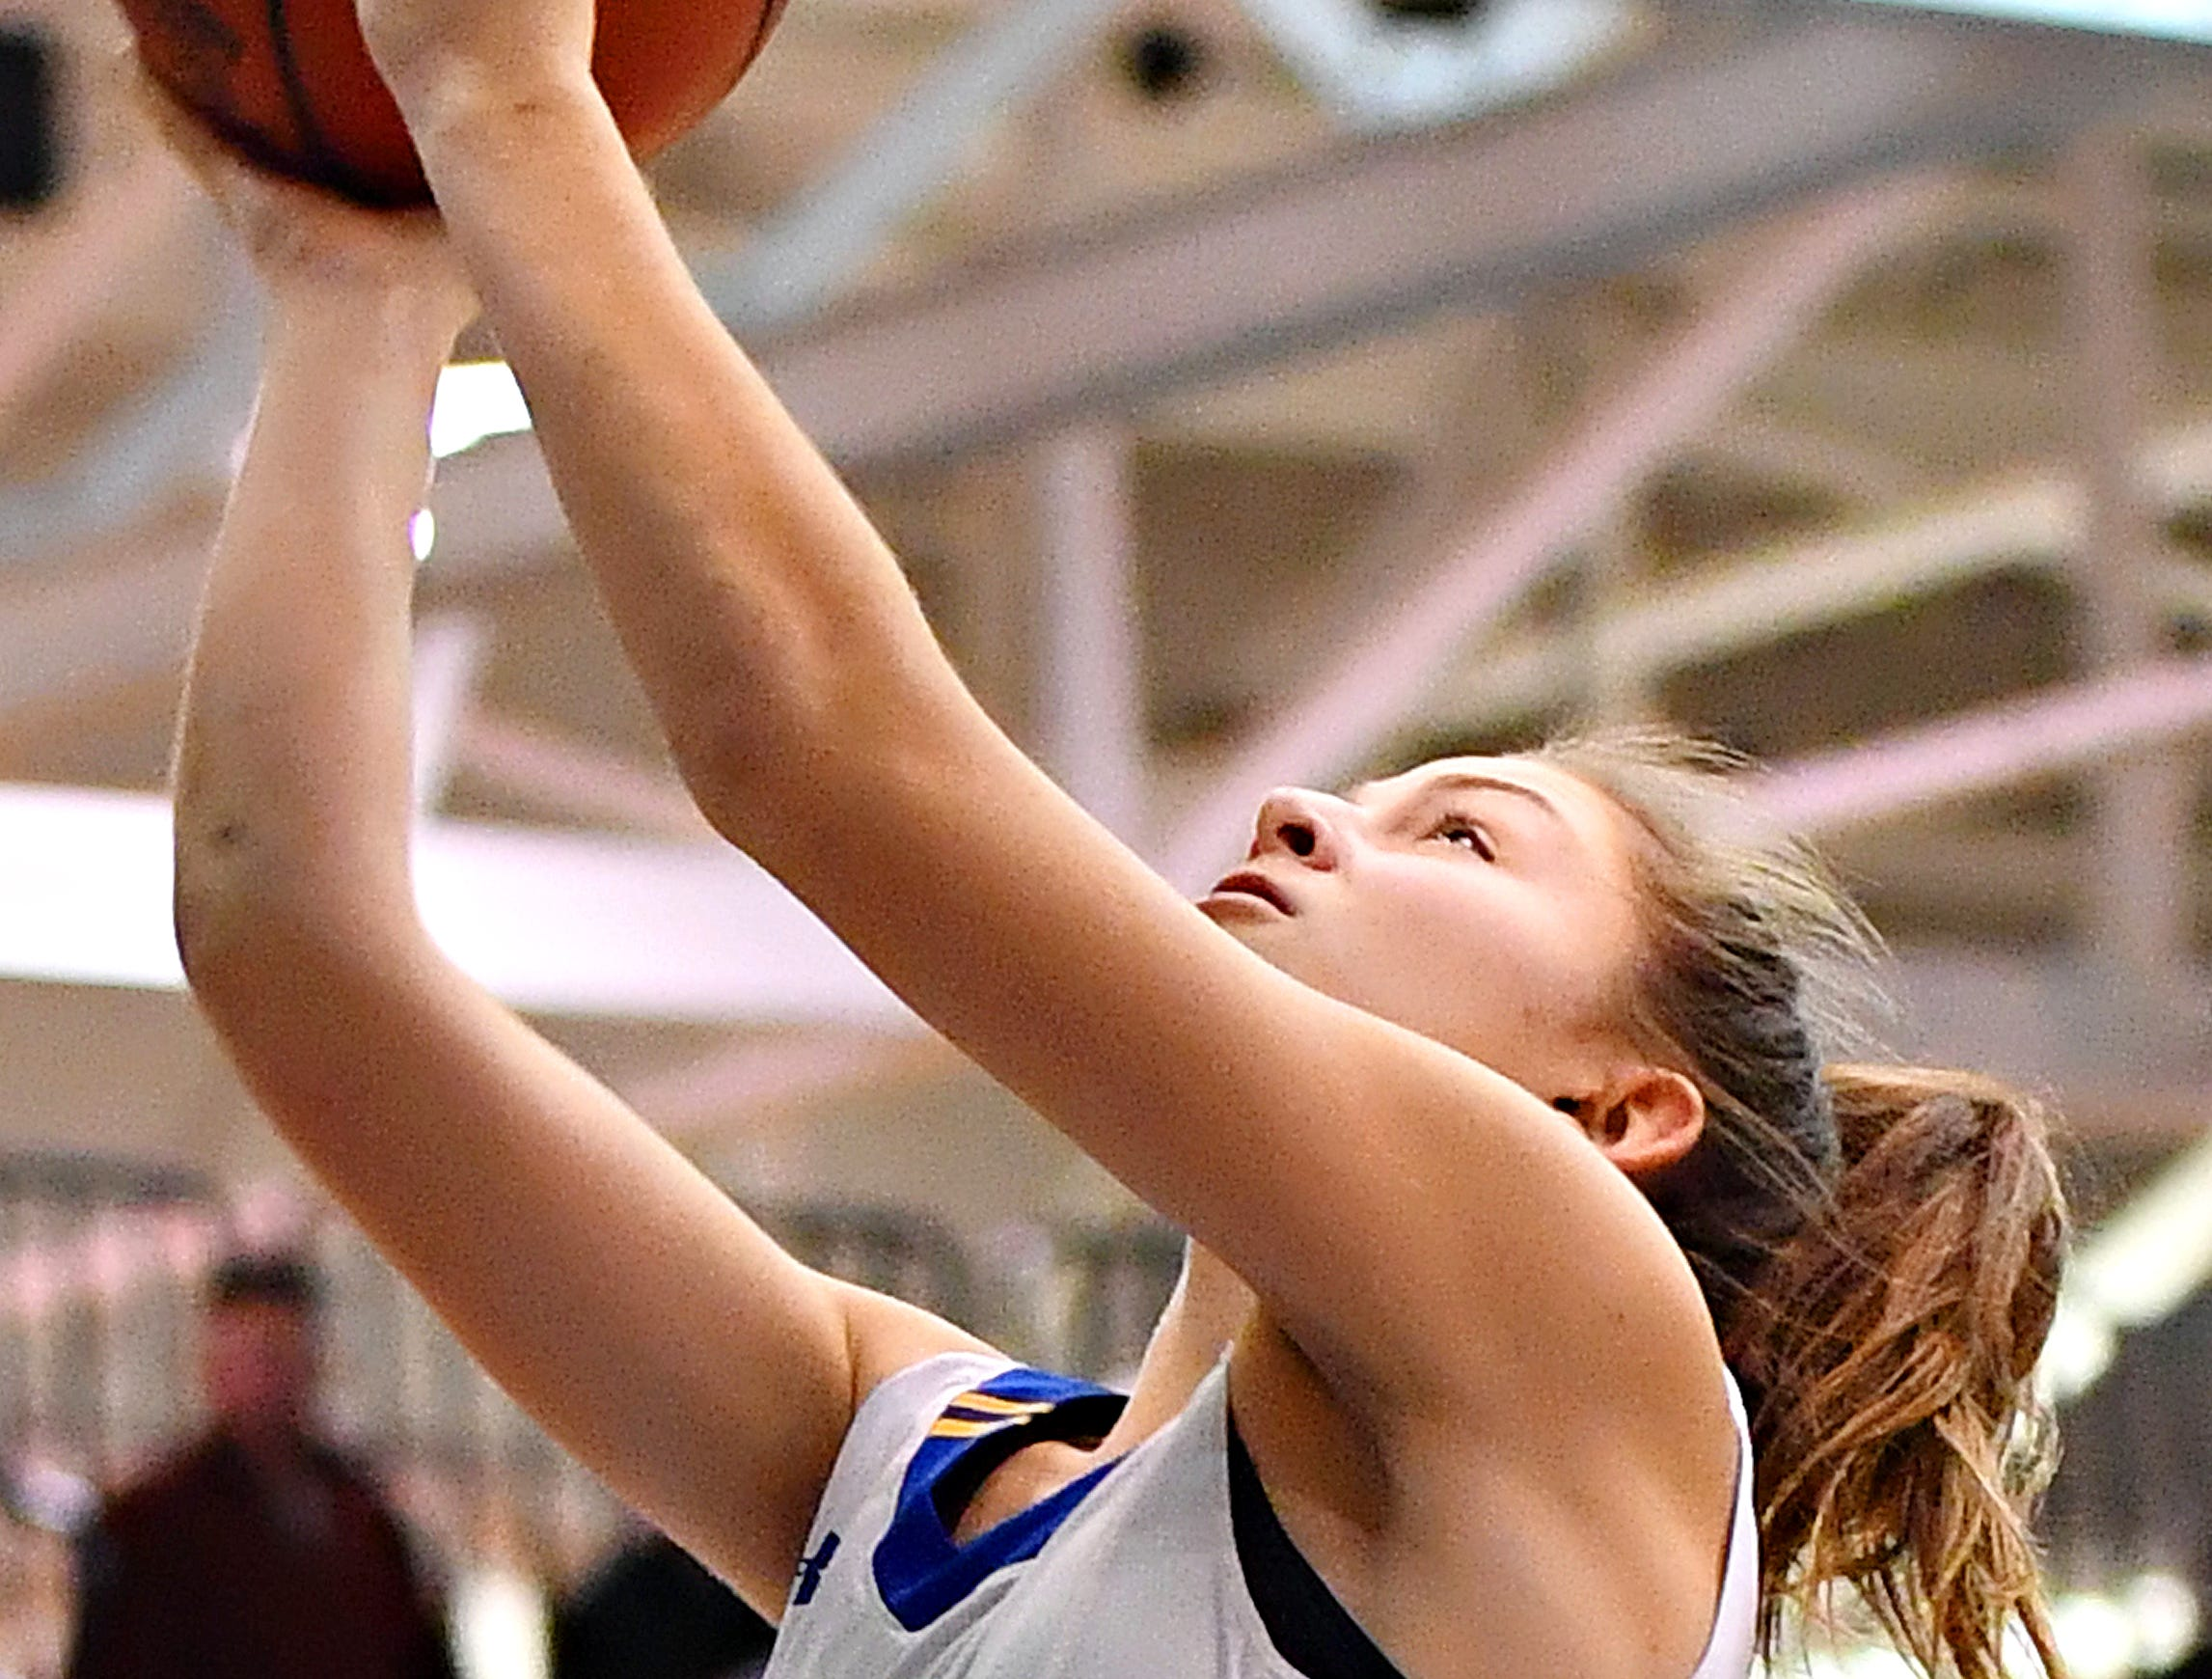 Kennard-Dale's Jaedyn McKeon takes the ball to the basket during York-Adams League girls' basketball quarterfinal action against Spring Grove at Dallastown Area High School in York Township, Friday, Feb. 8, 2019. Spring Grove would win the game 47-38. Dawn J. Sagert photo